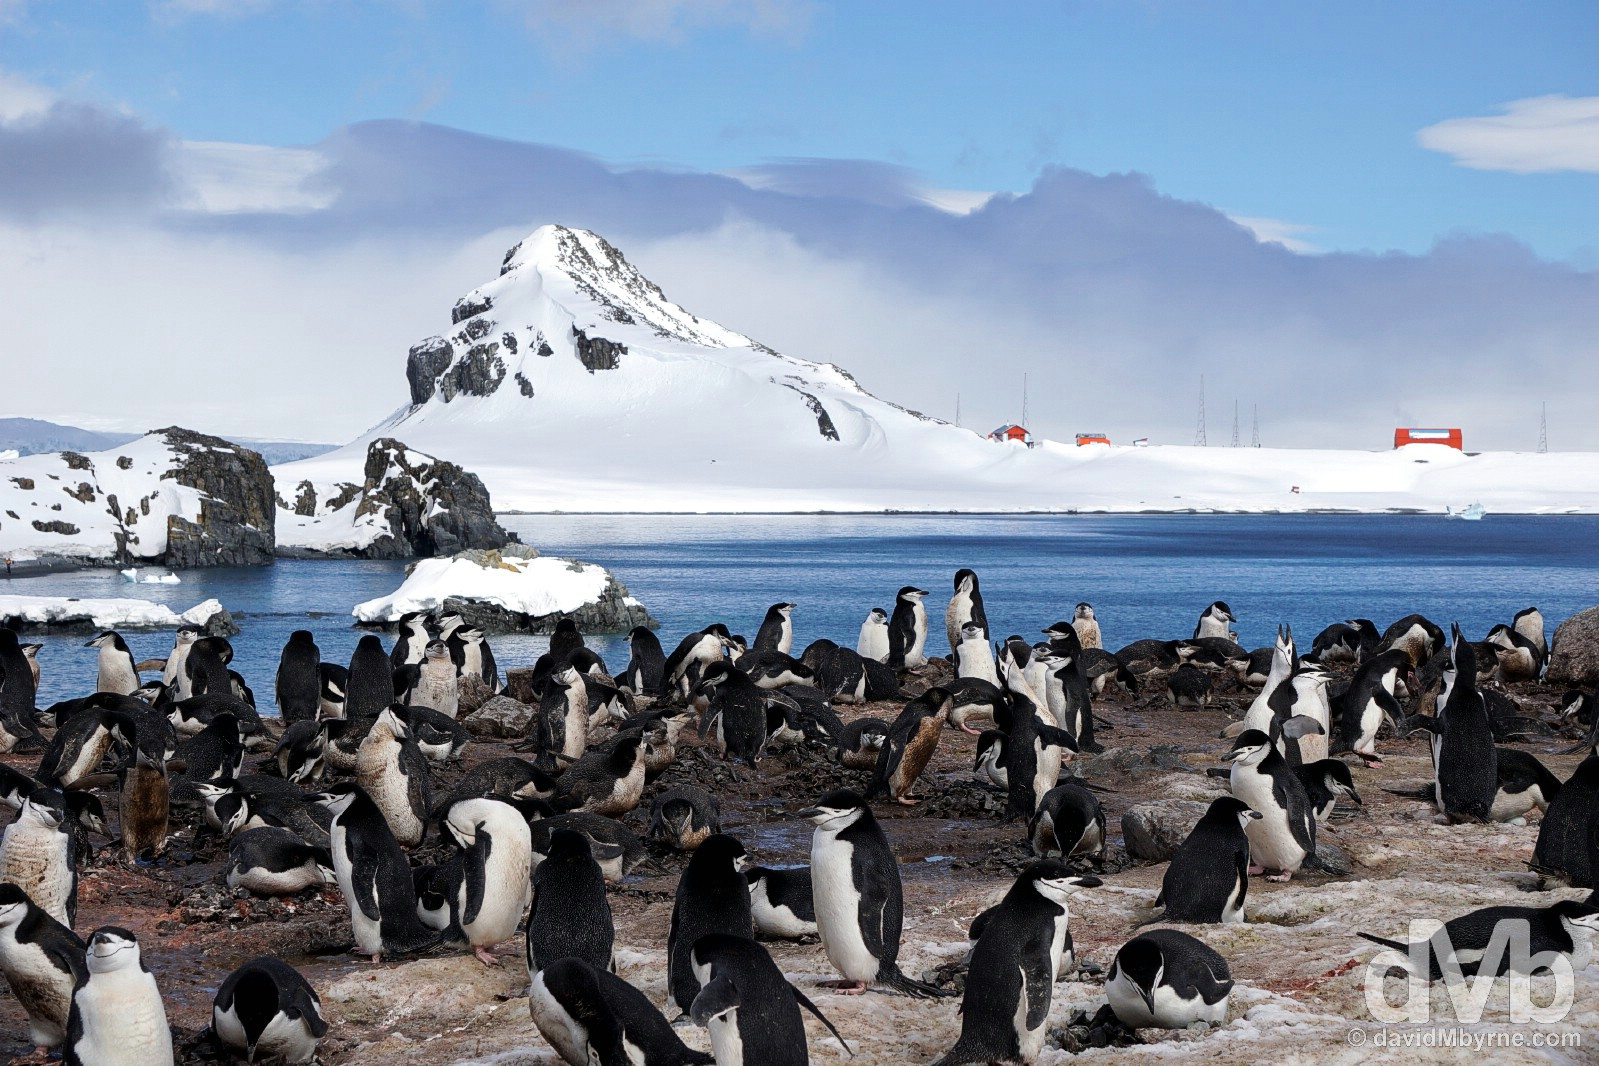 A Chinstrap penguin rookery on Half Moon Island, South Shetland Islands, Antarctica. November 29, 2015.